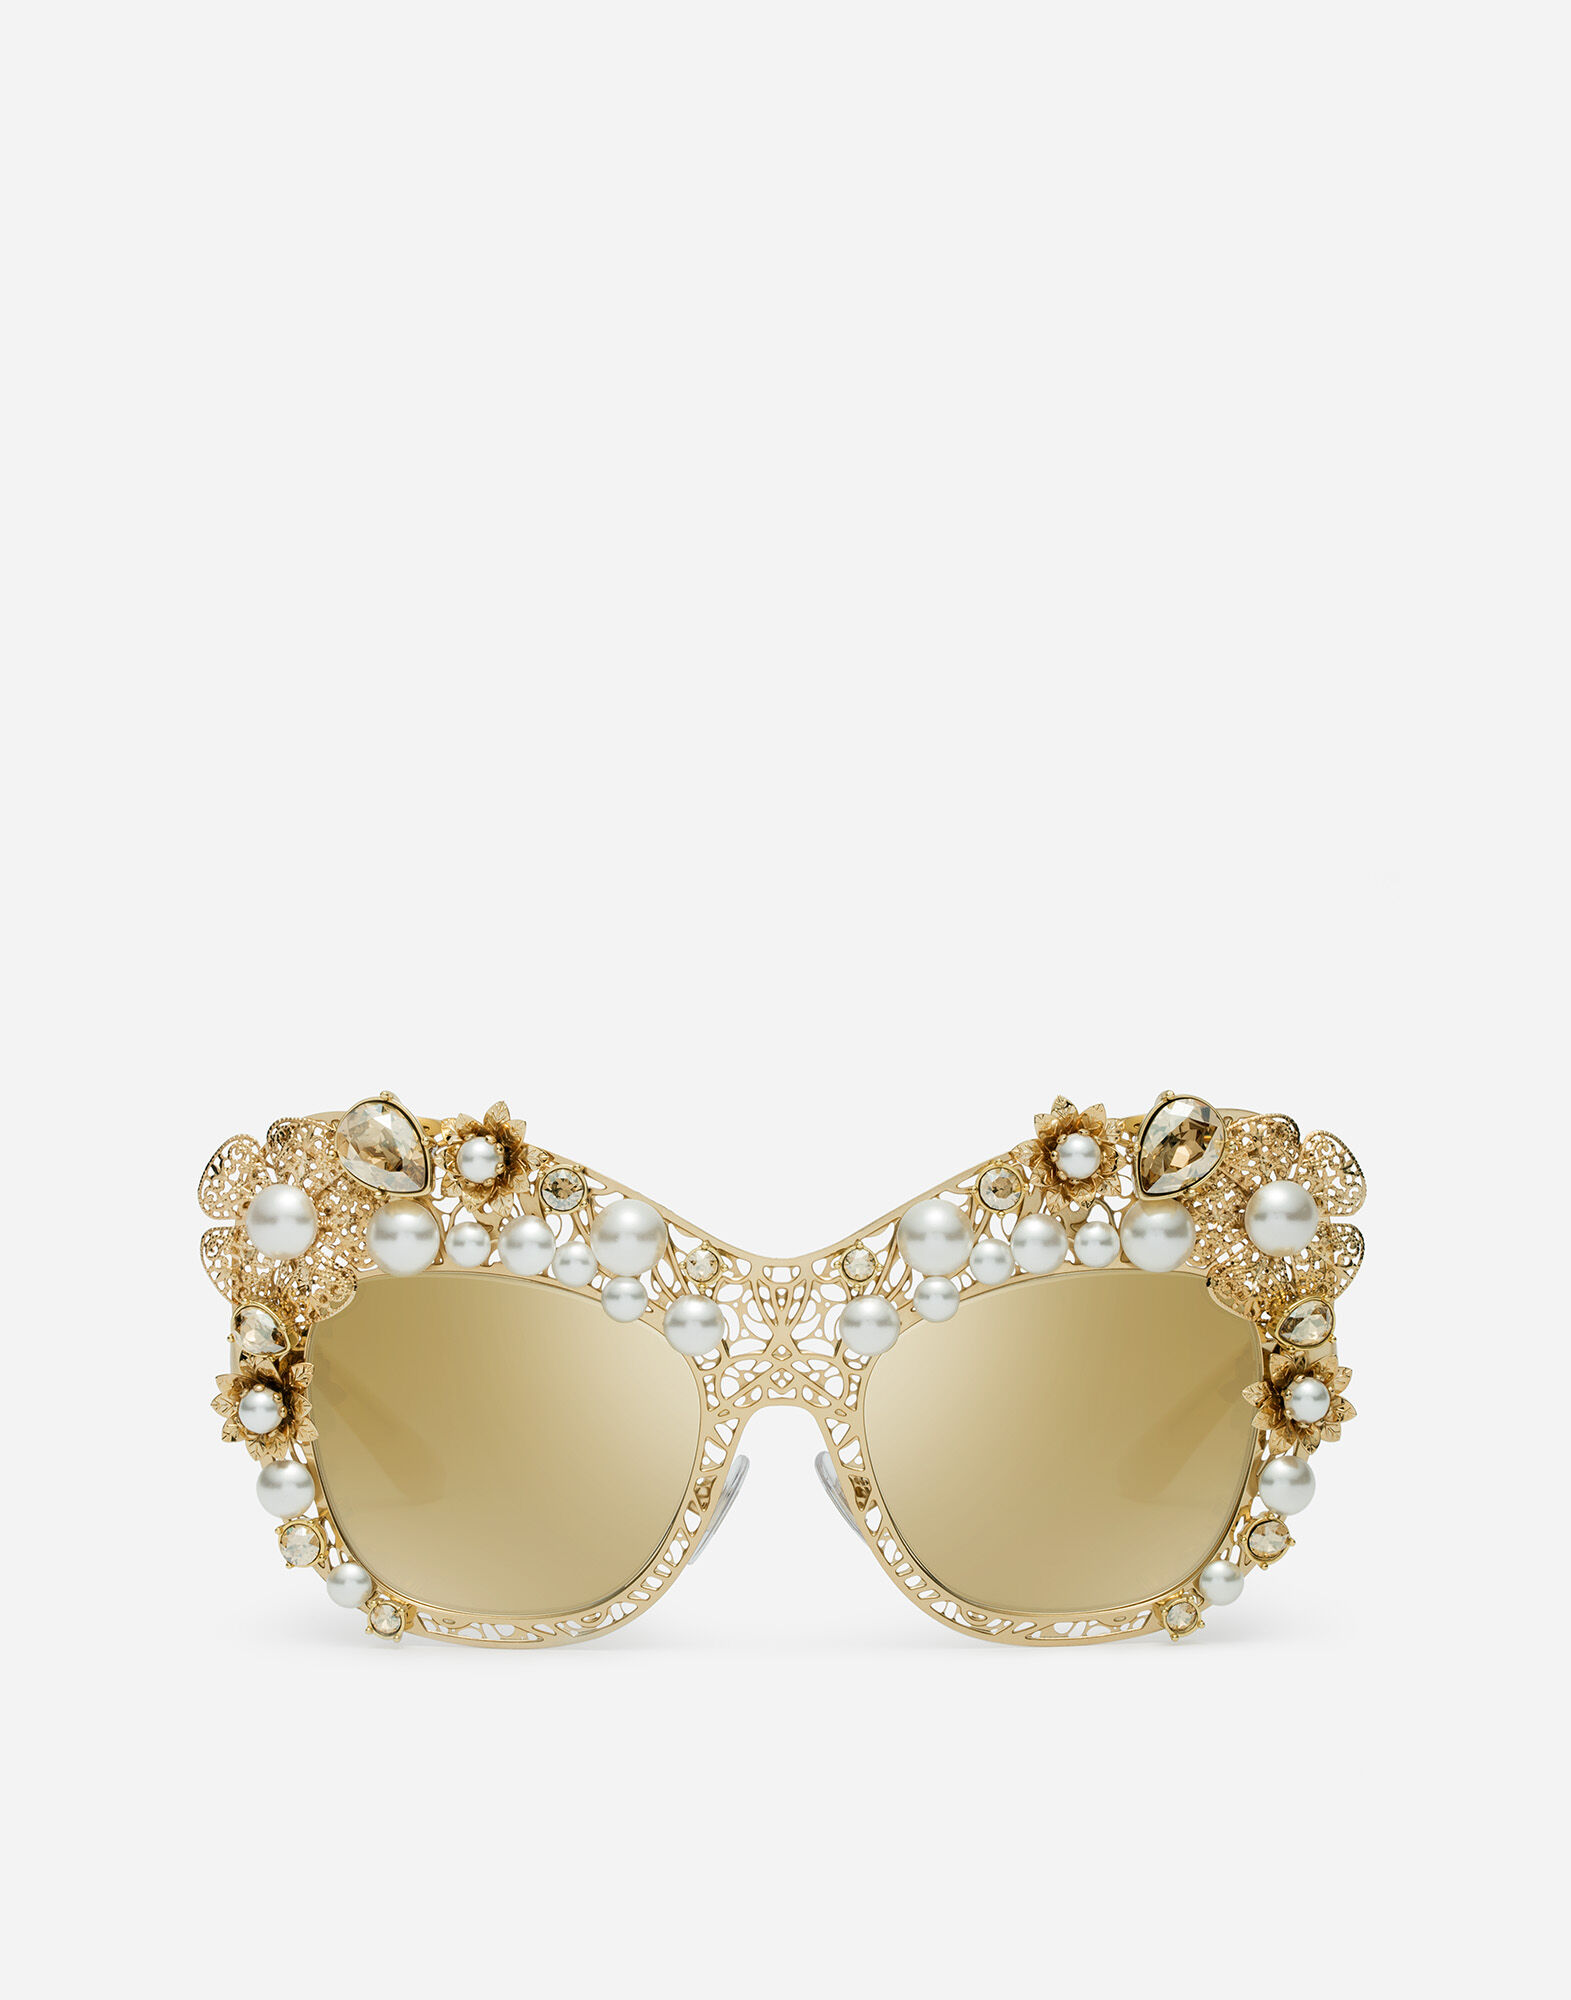 BUTTERFLY SUNGLASSES WITH HYDRANGEA EMBELLISHMENT